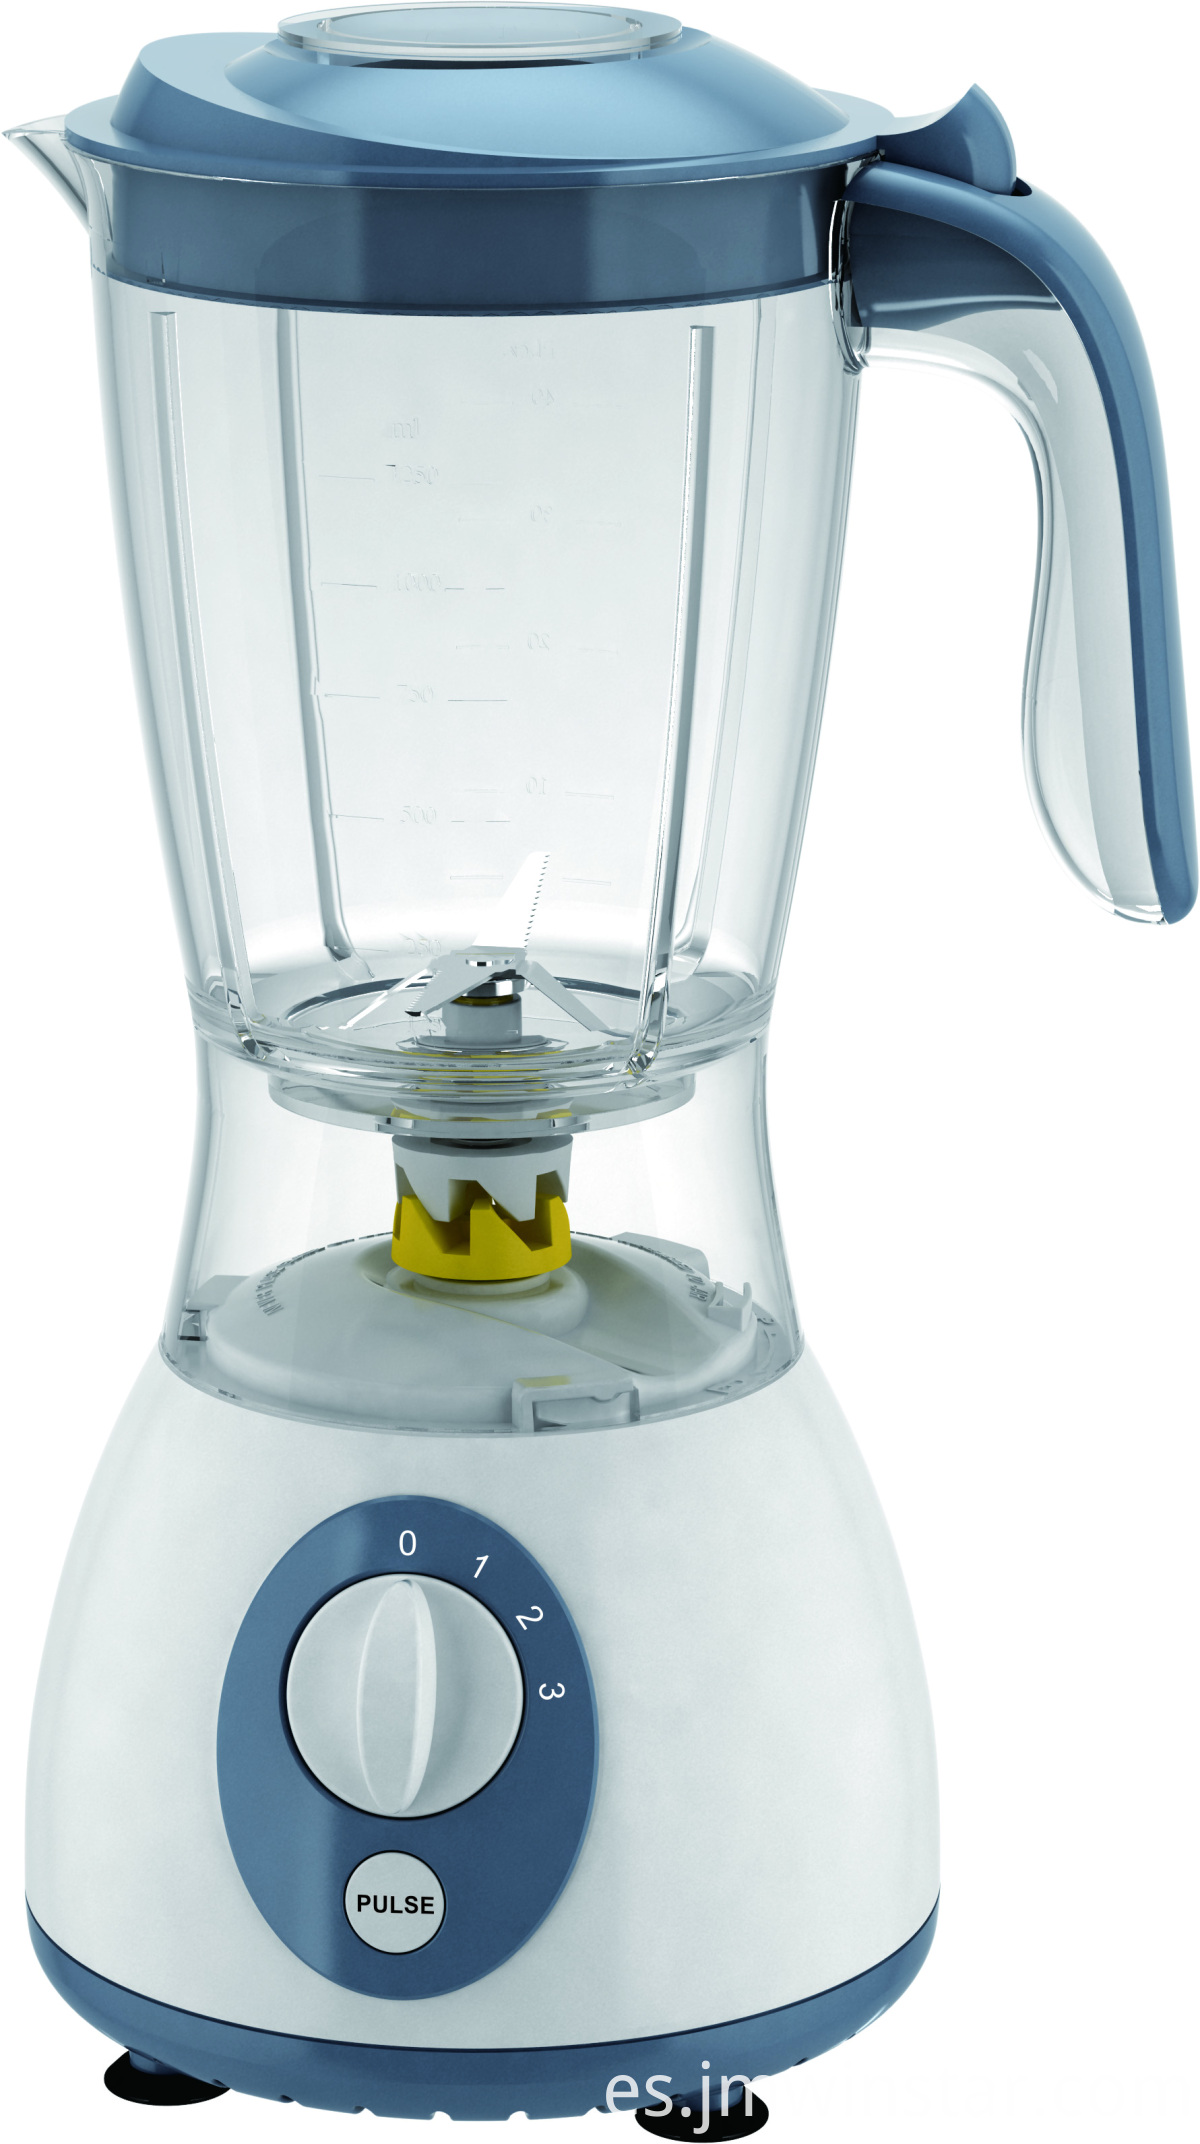 Commercial Chromed Color Blender